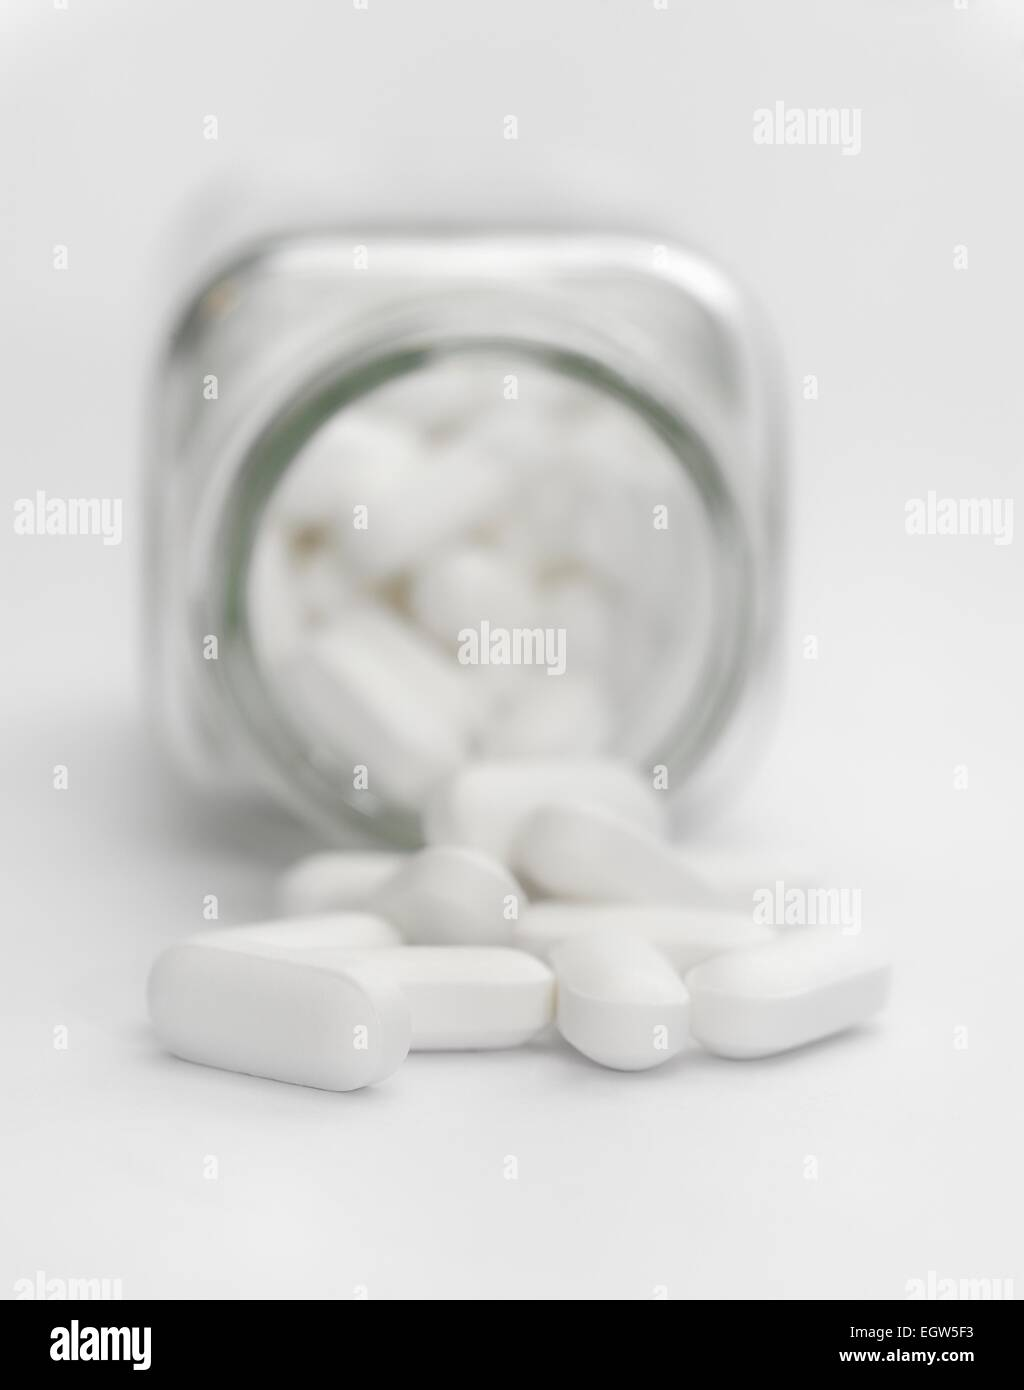 Small White Pills Stock Photos Amp Small White Pills Stock